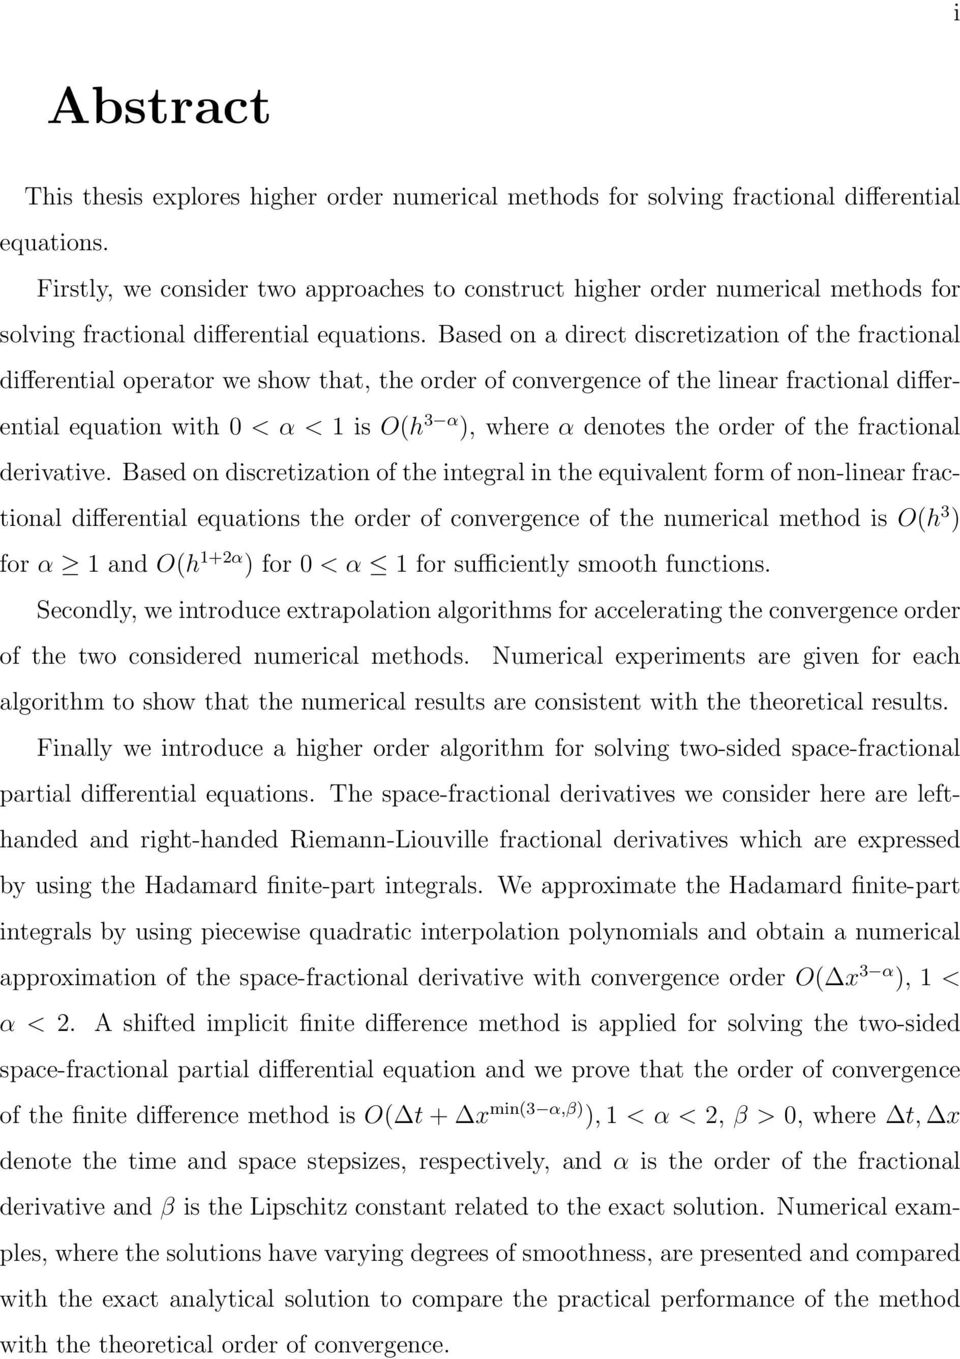 thesis on fractional differential equations